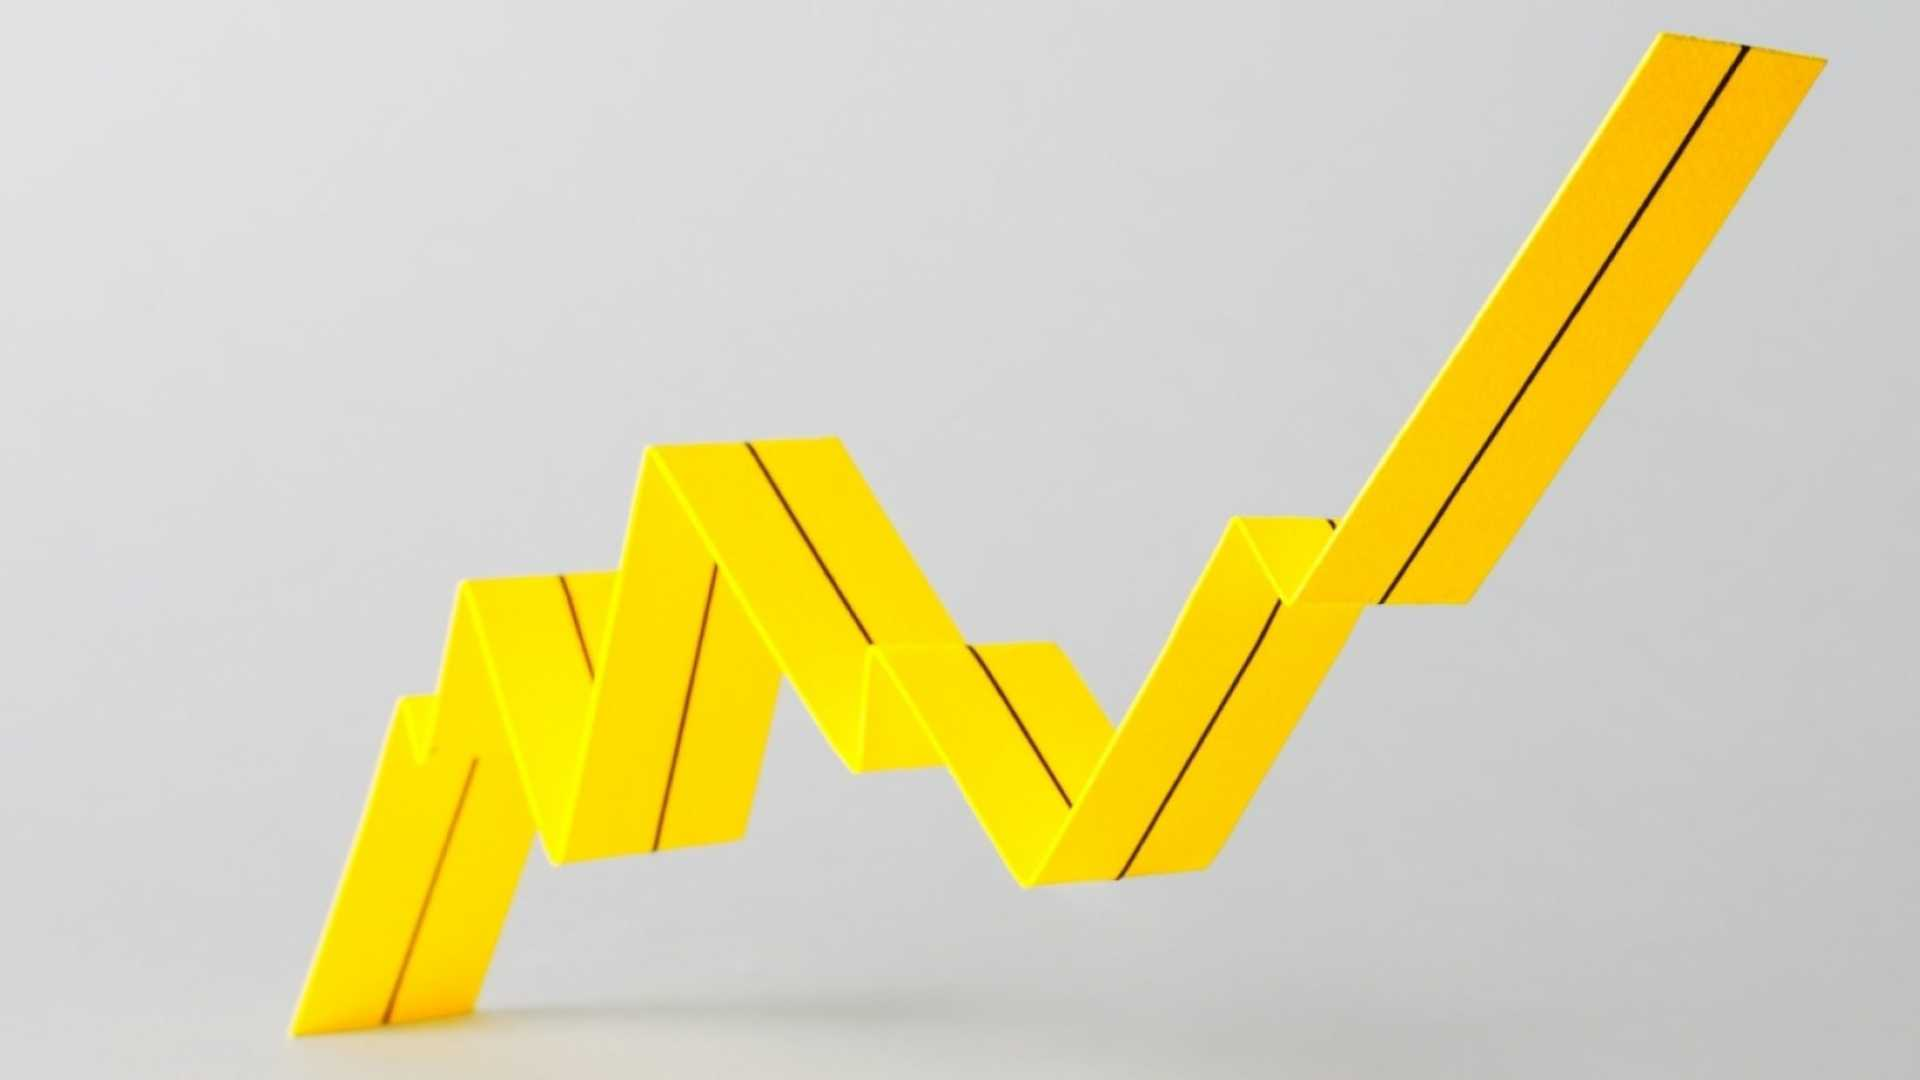 4 Ways to Start Measuring Your Marketing Analytics to Help Your Bottom Line